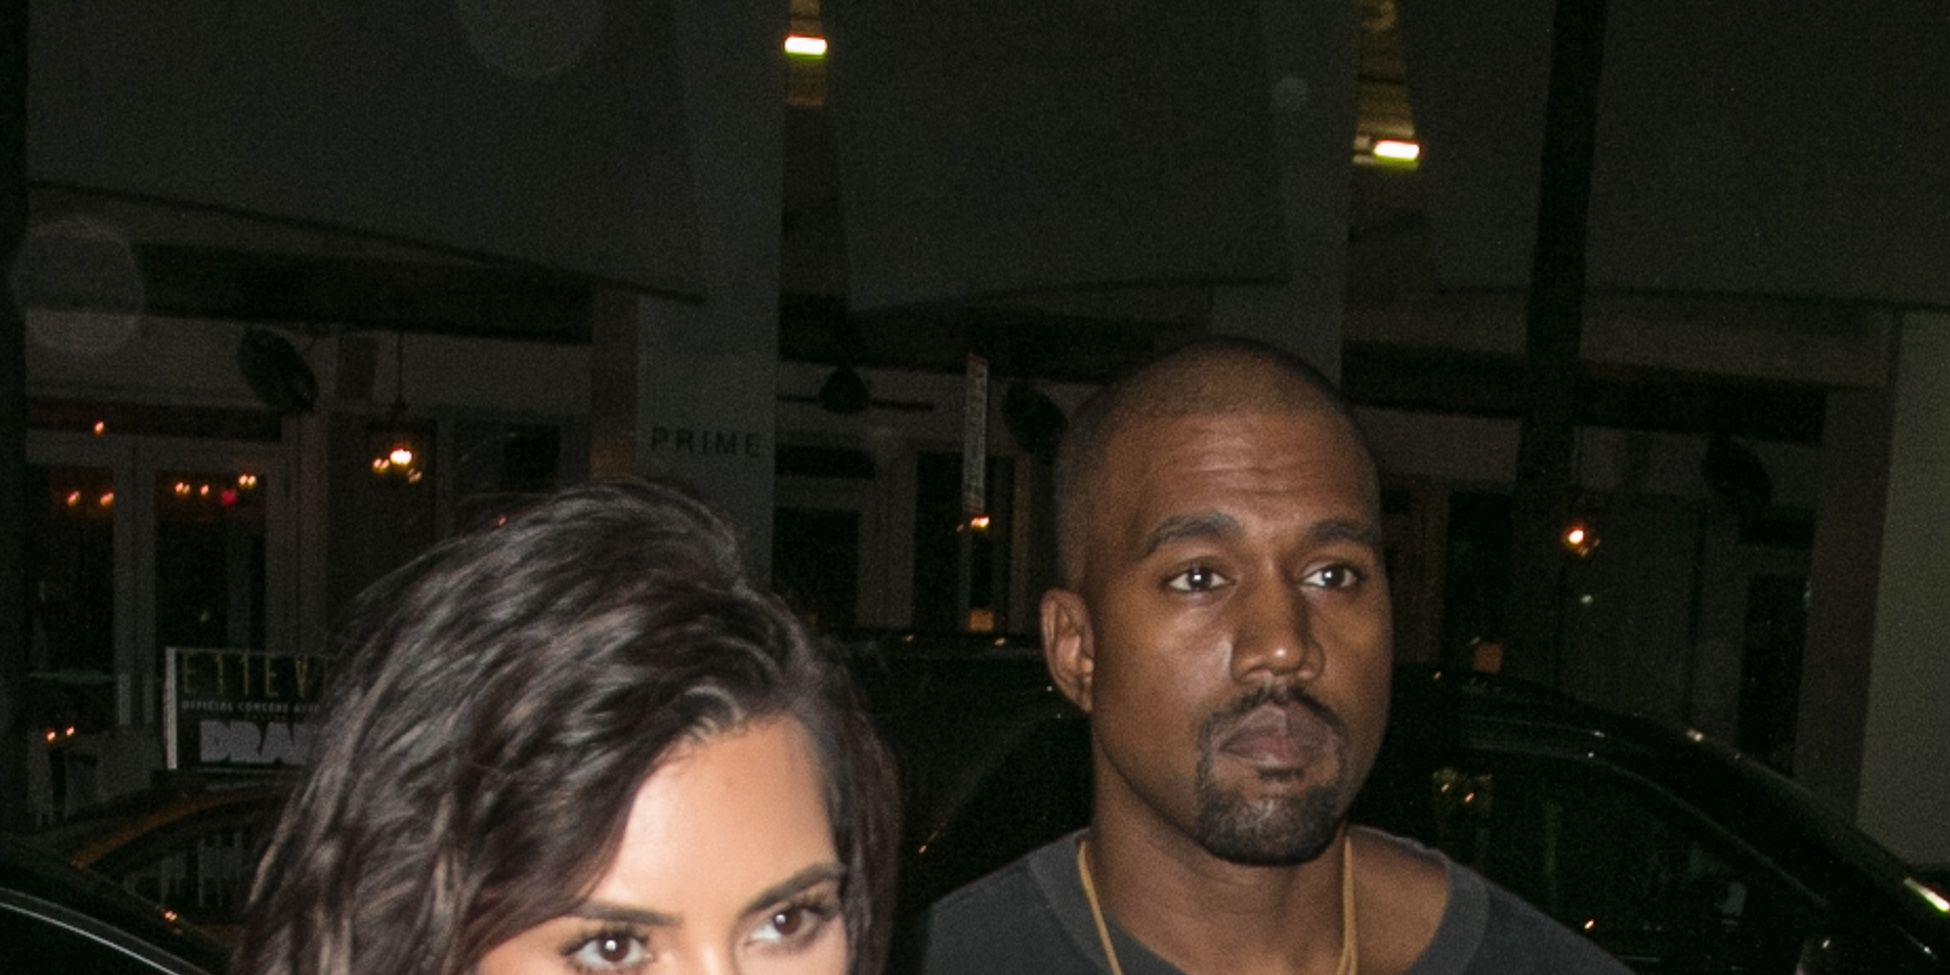 Kim Kardashian and Kanye West are seen arriving to Prime 112 steakhouse